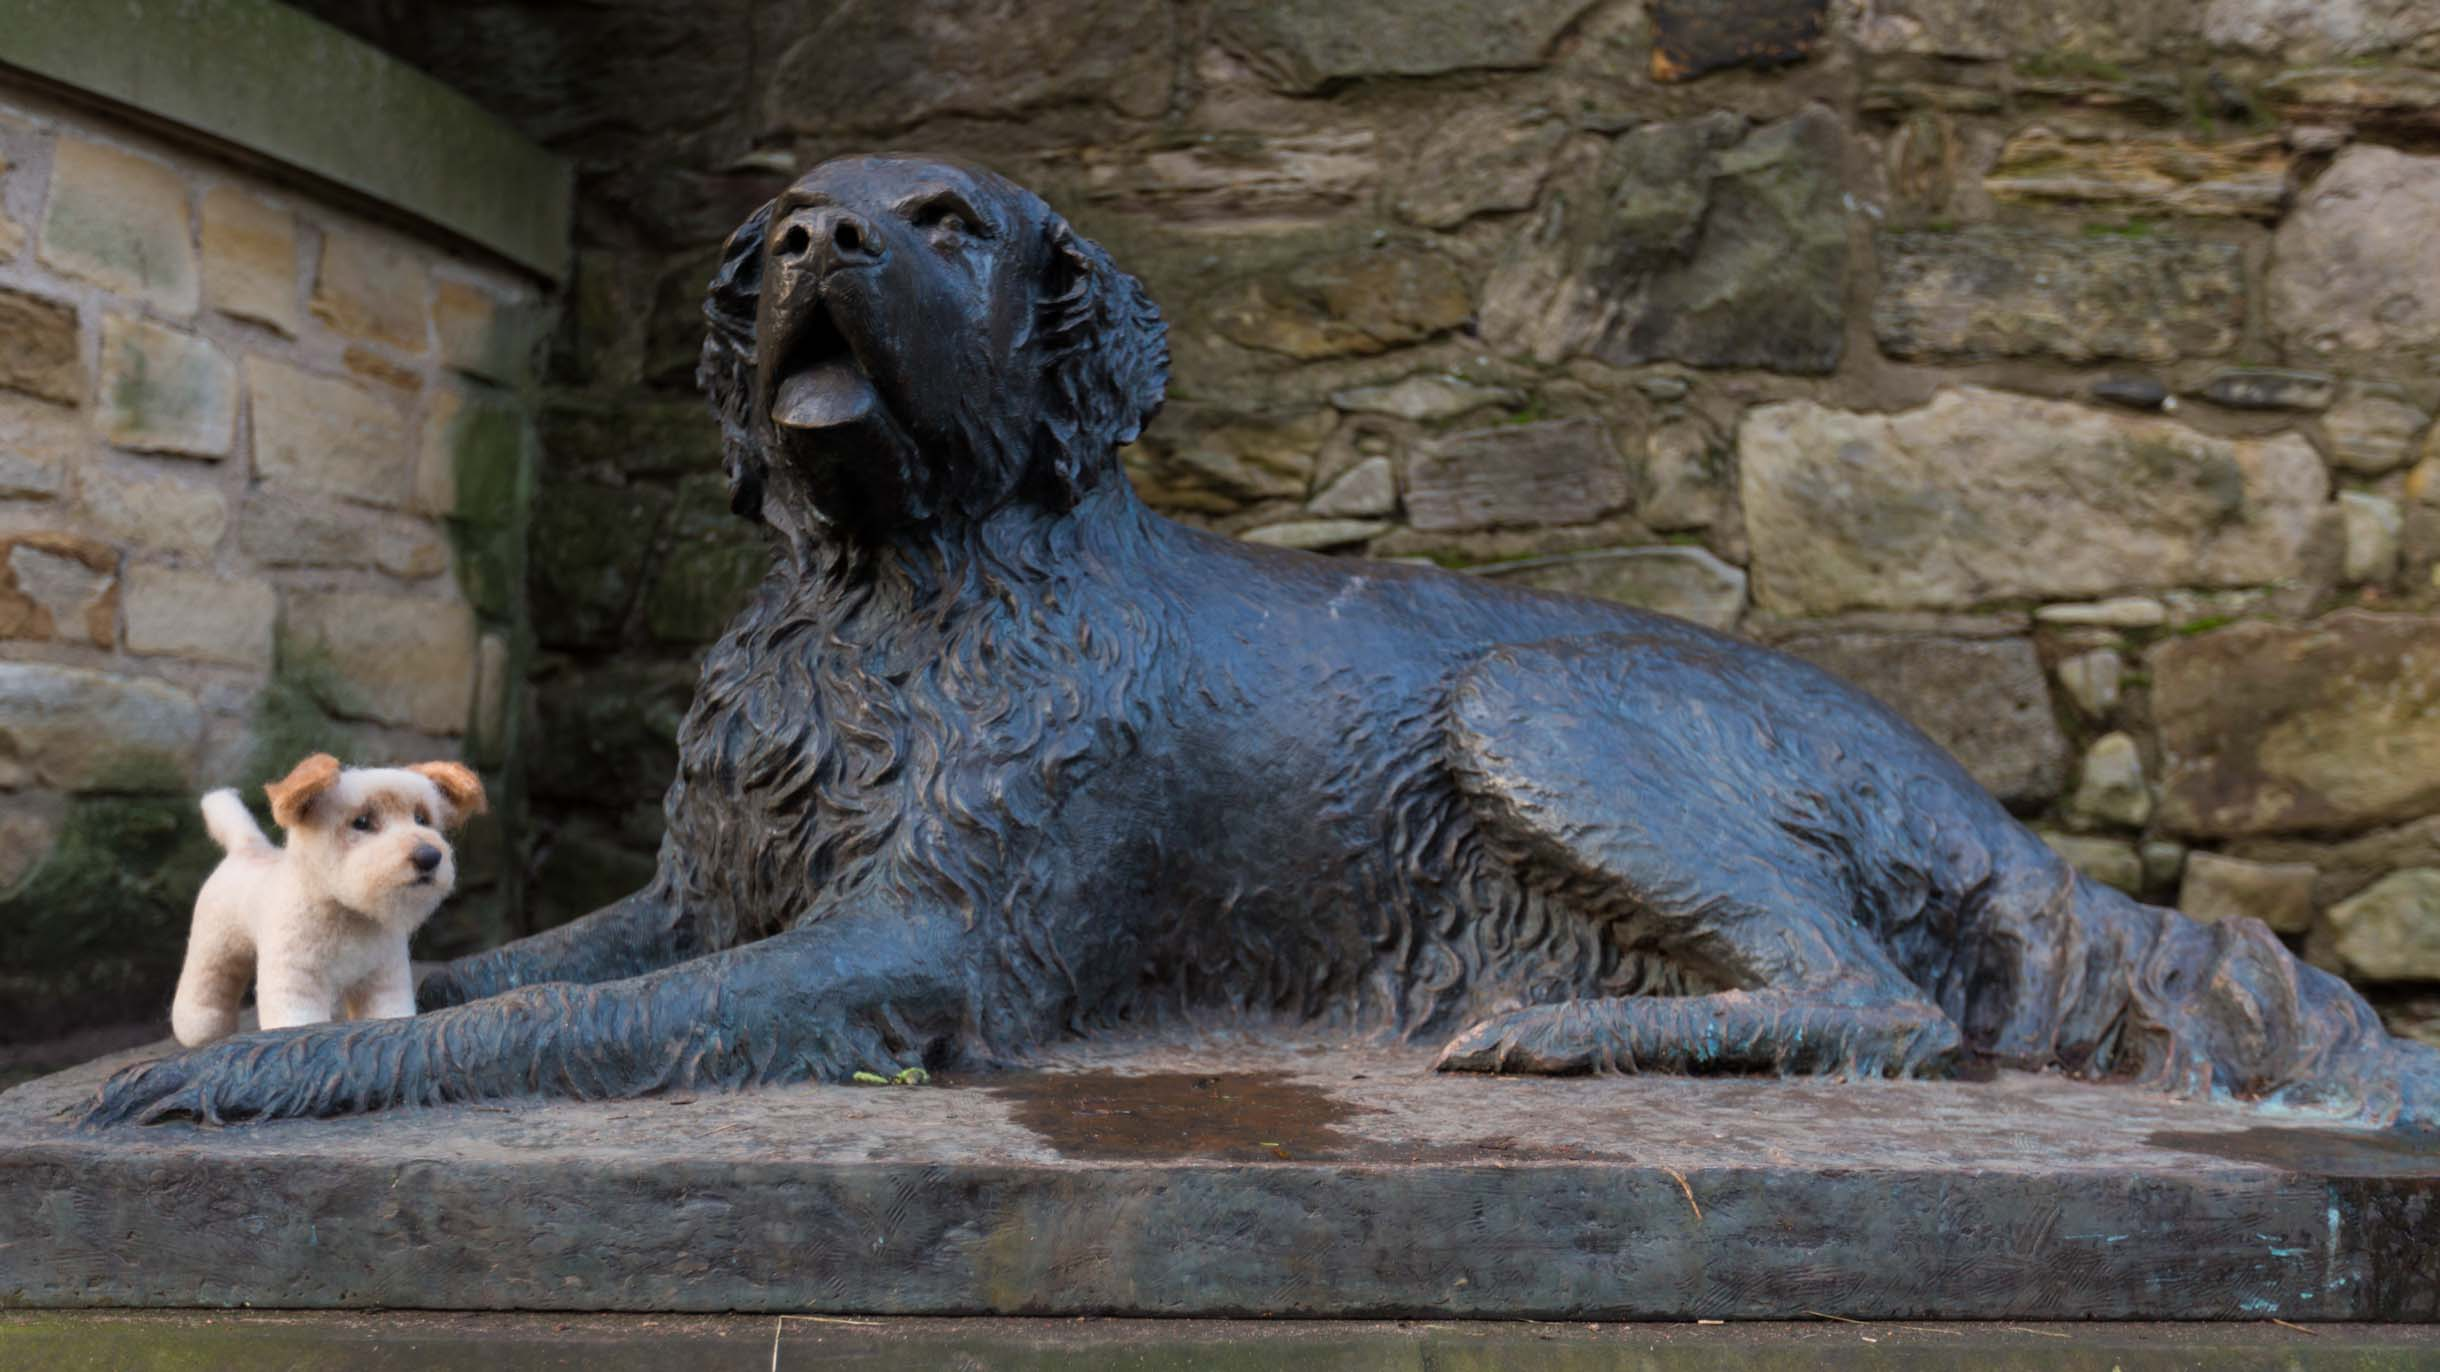 Picture Taken While Exploring Edinburgh - statue of dog in edinburgh